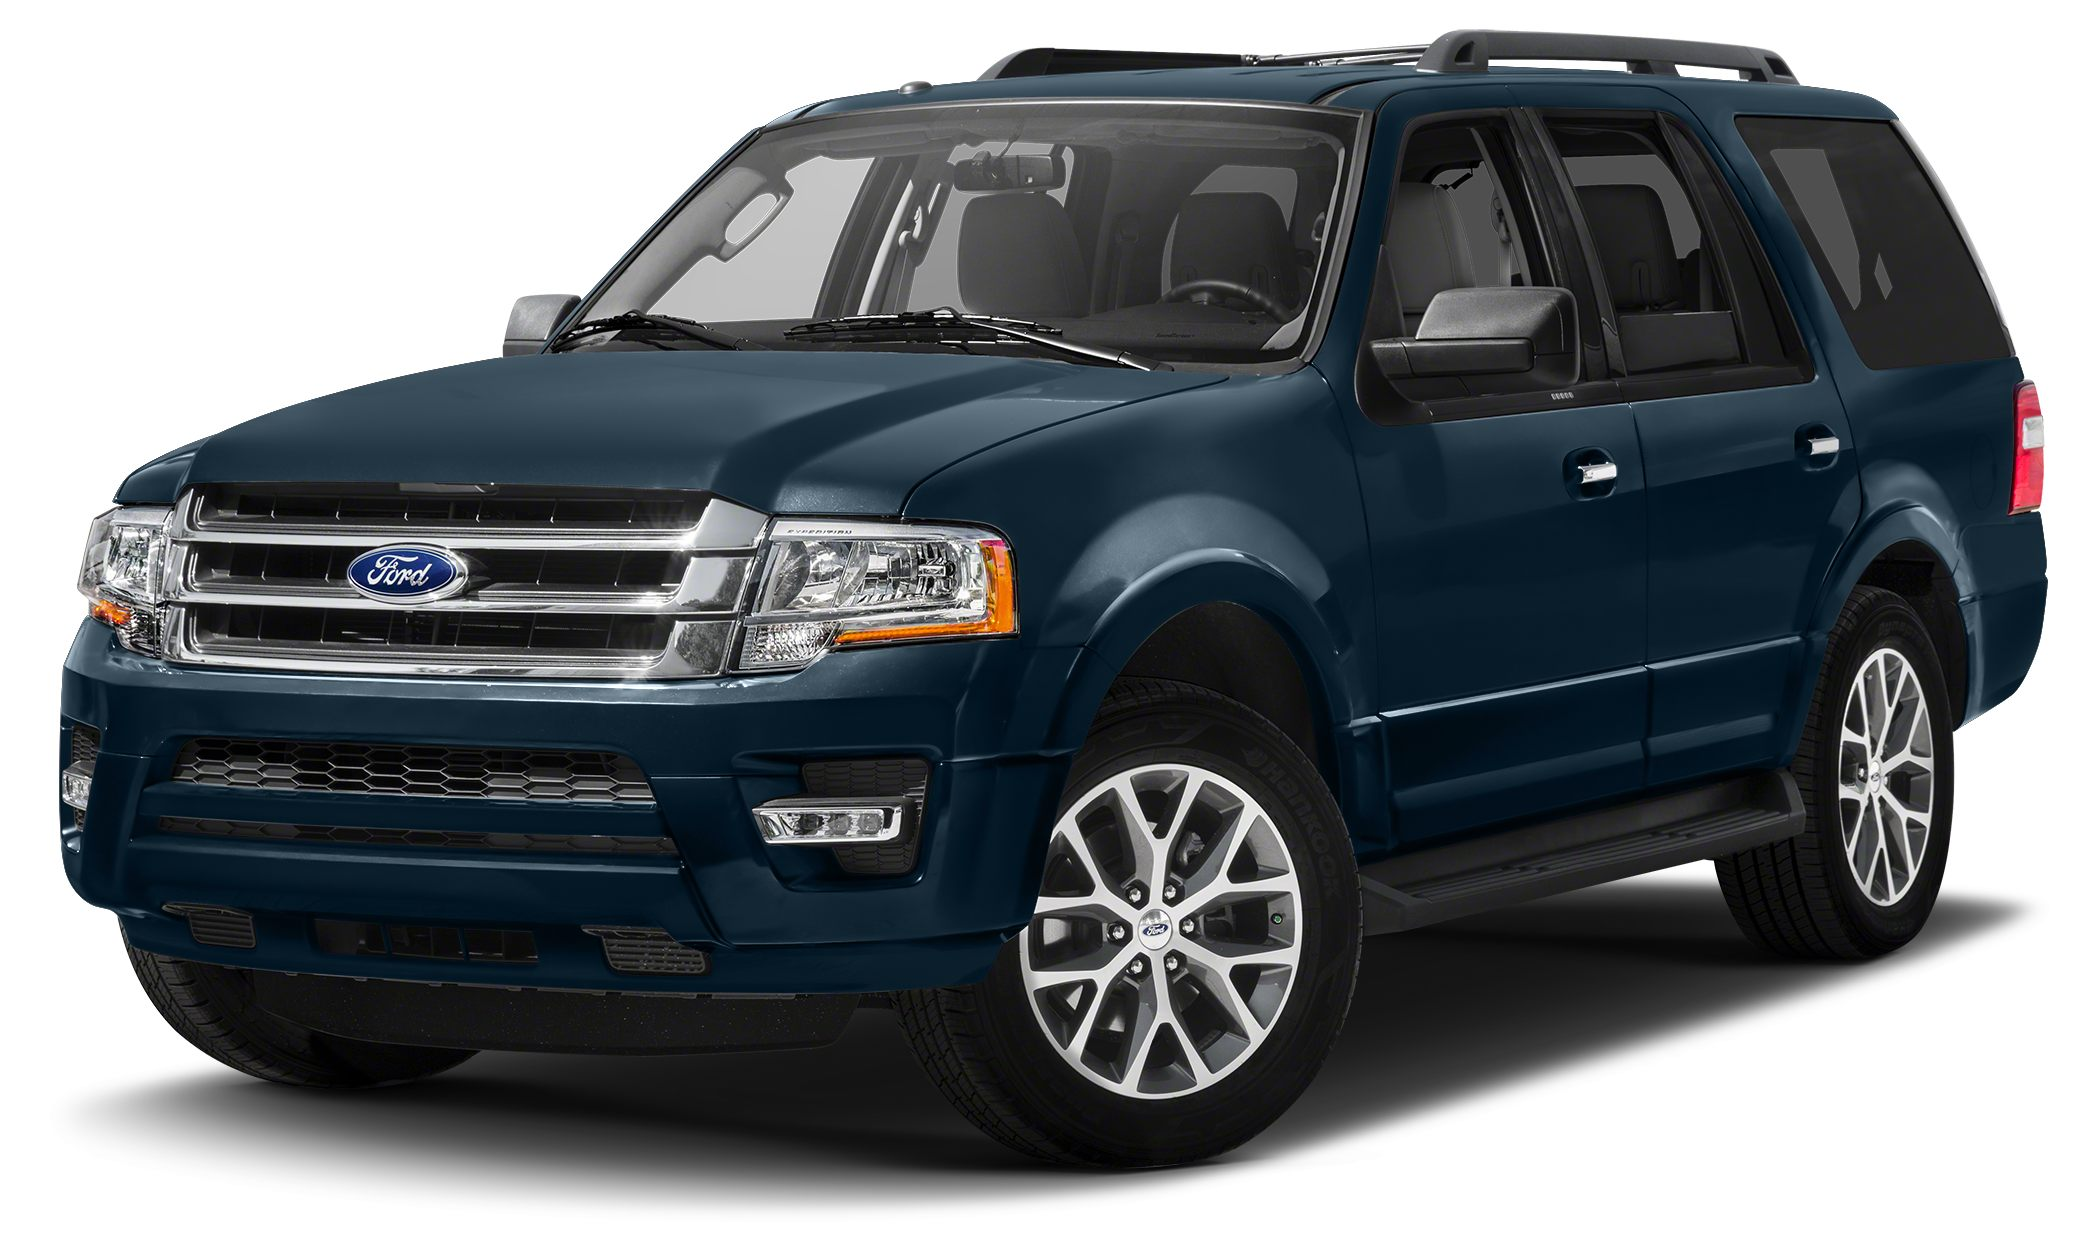 2015 Ford Expedition XLT Redesigned for 2015 welcome in the all new Ford Expedition A new aggress